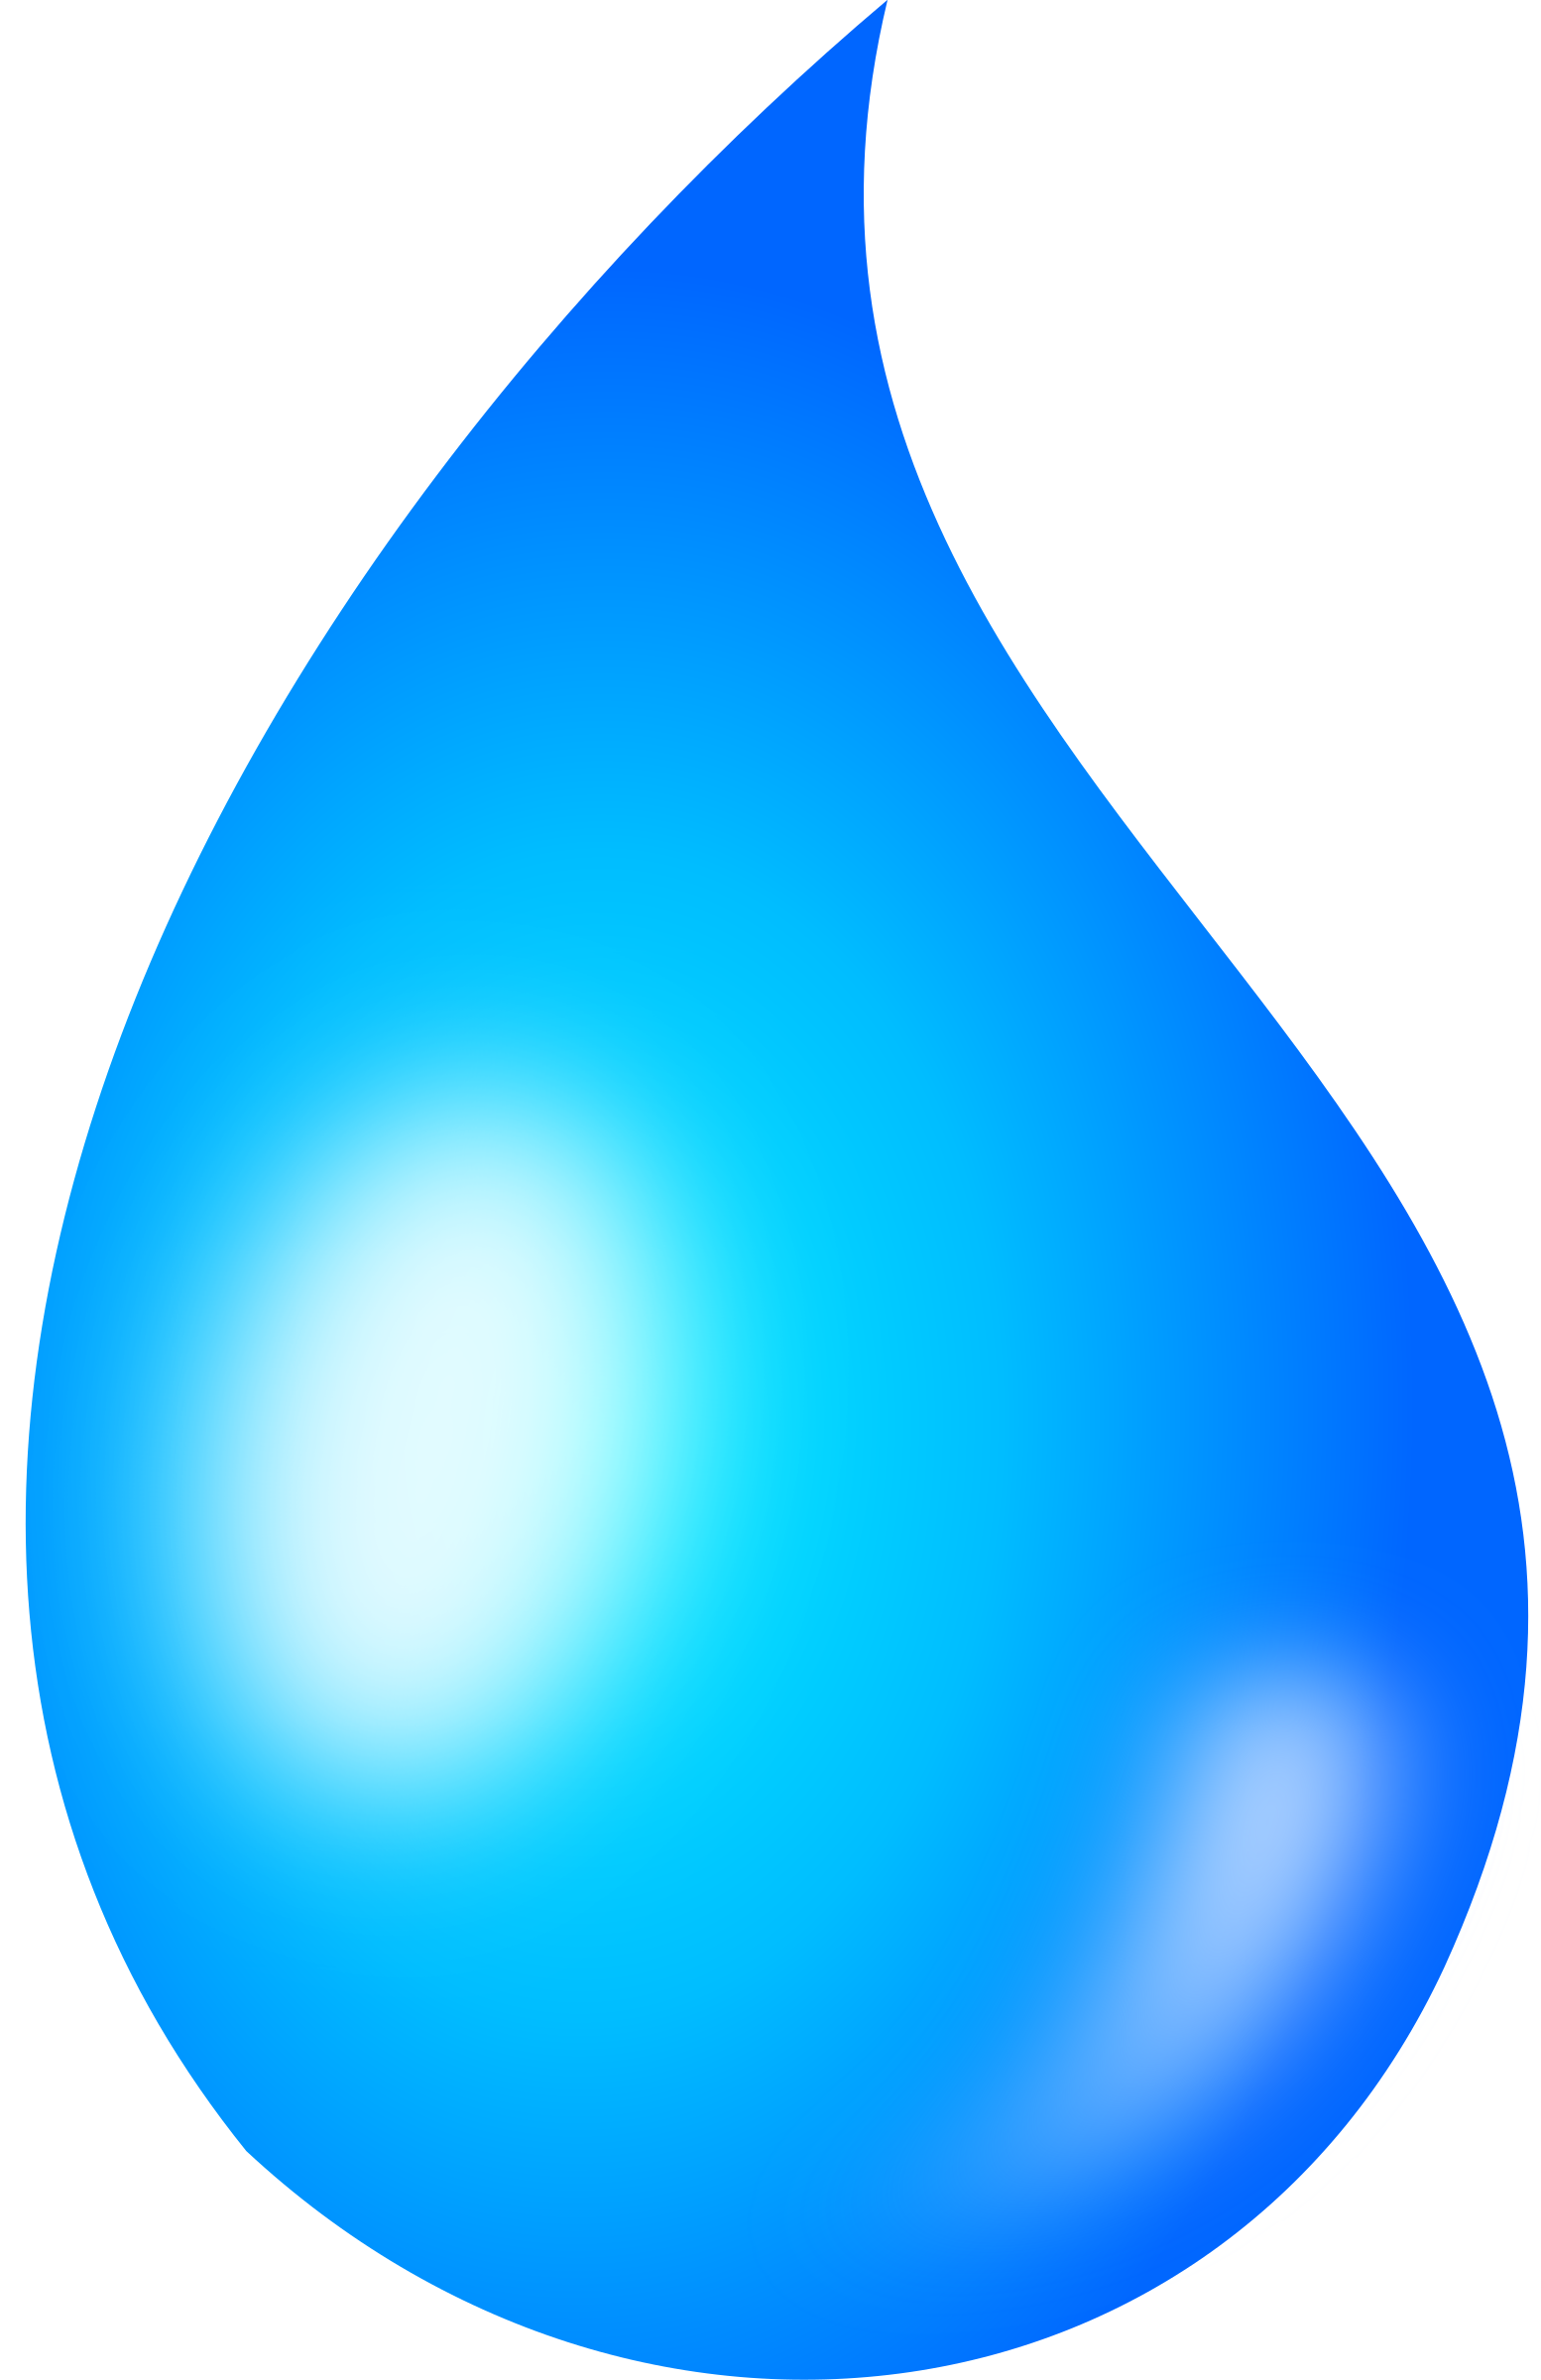 Water drop png. Clipart shaded big image